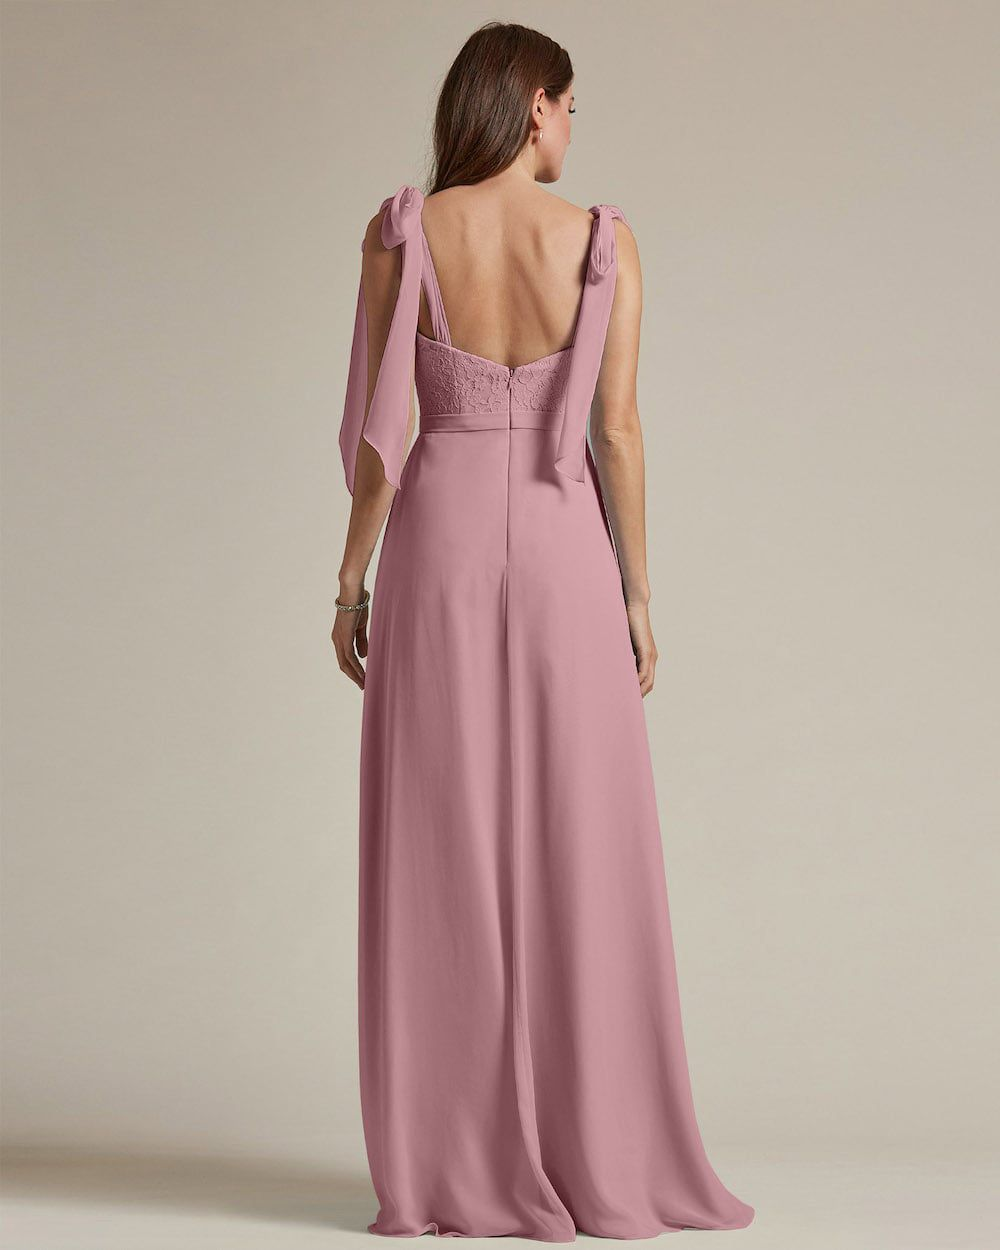 Ribbon Detail Shoulder With Embroidered Top Maid of Honor Dress - Back